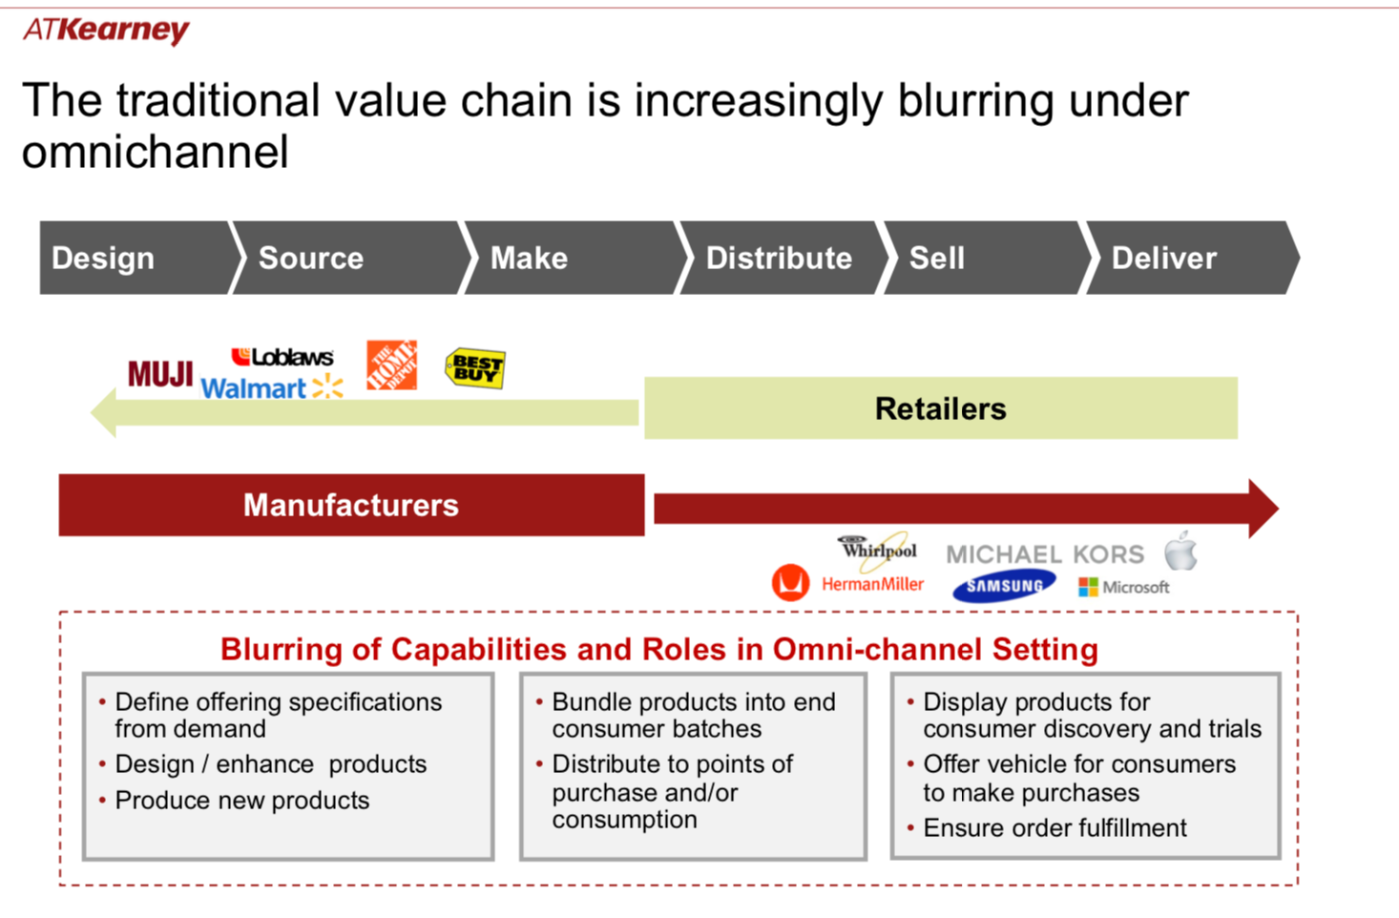 omnichannel value chain blur